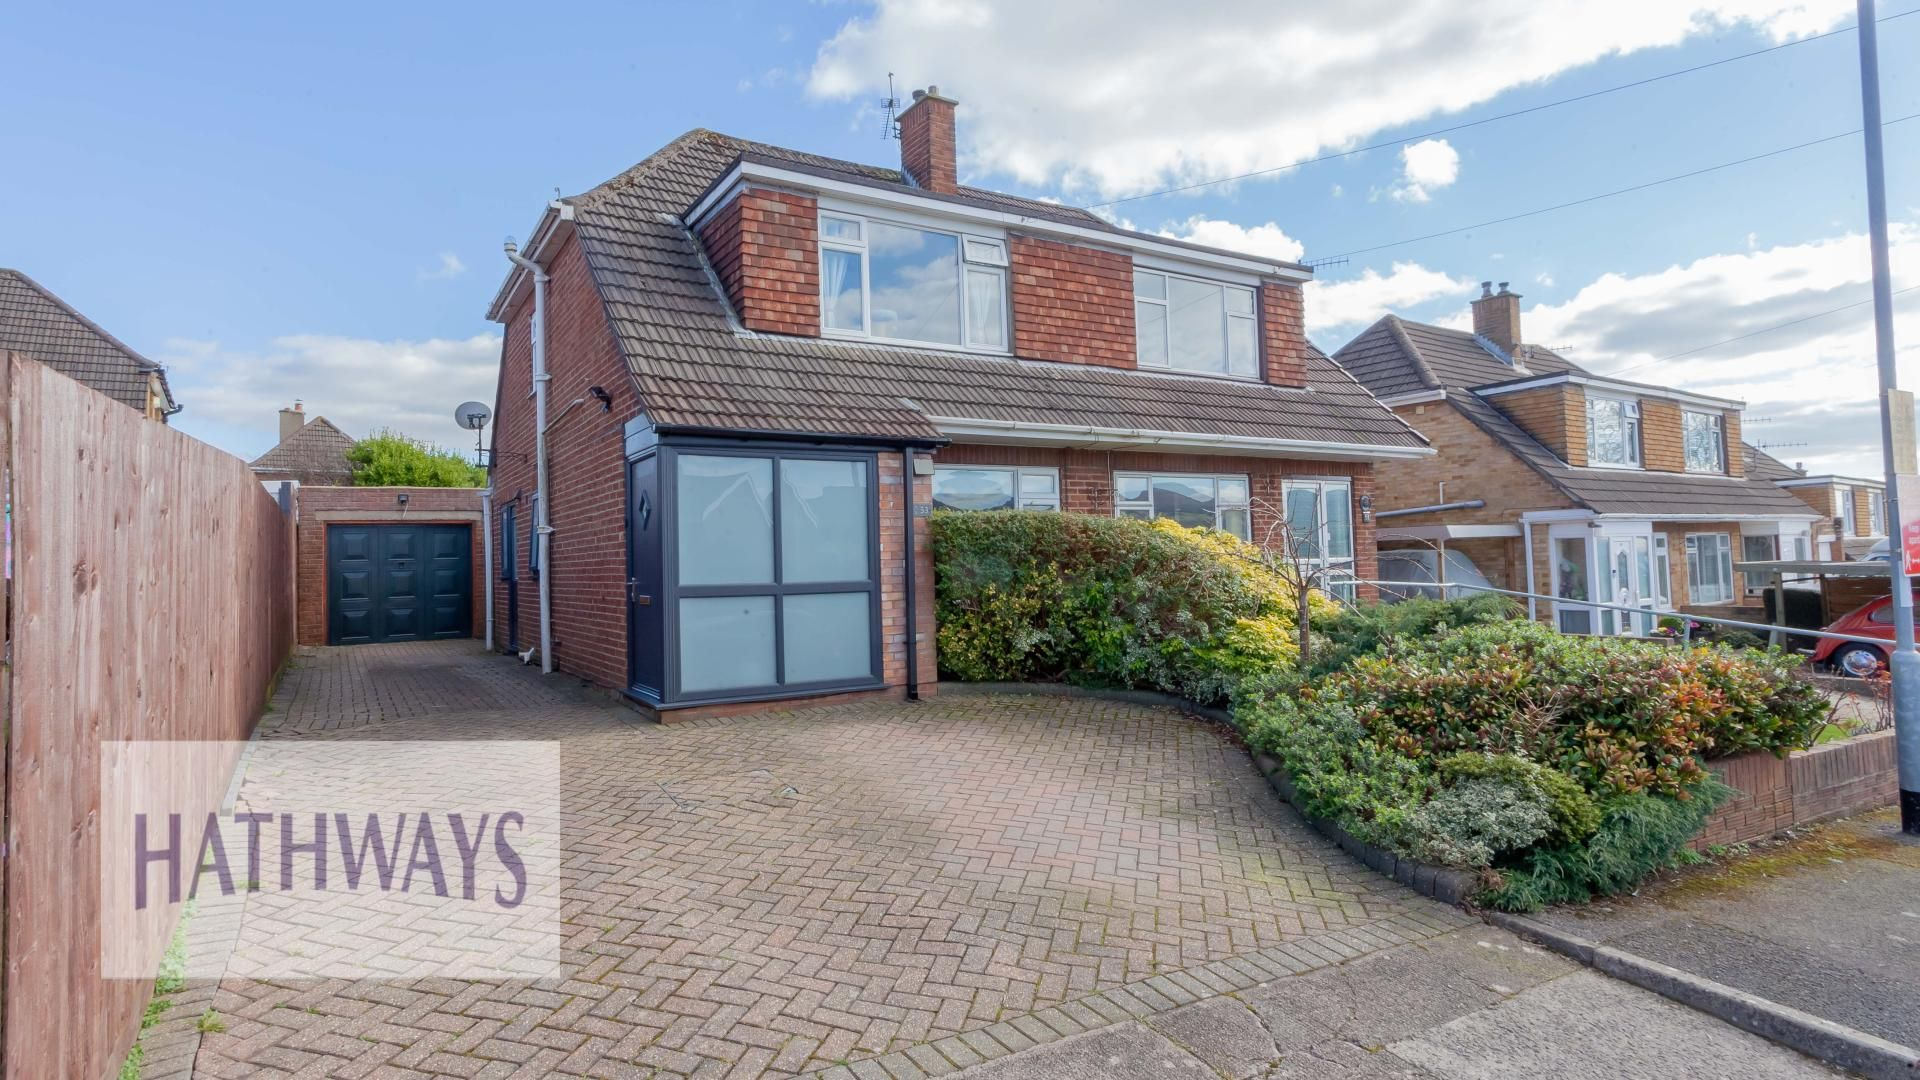 3 bed house for sale in Hillcrest, NP4